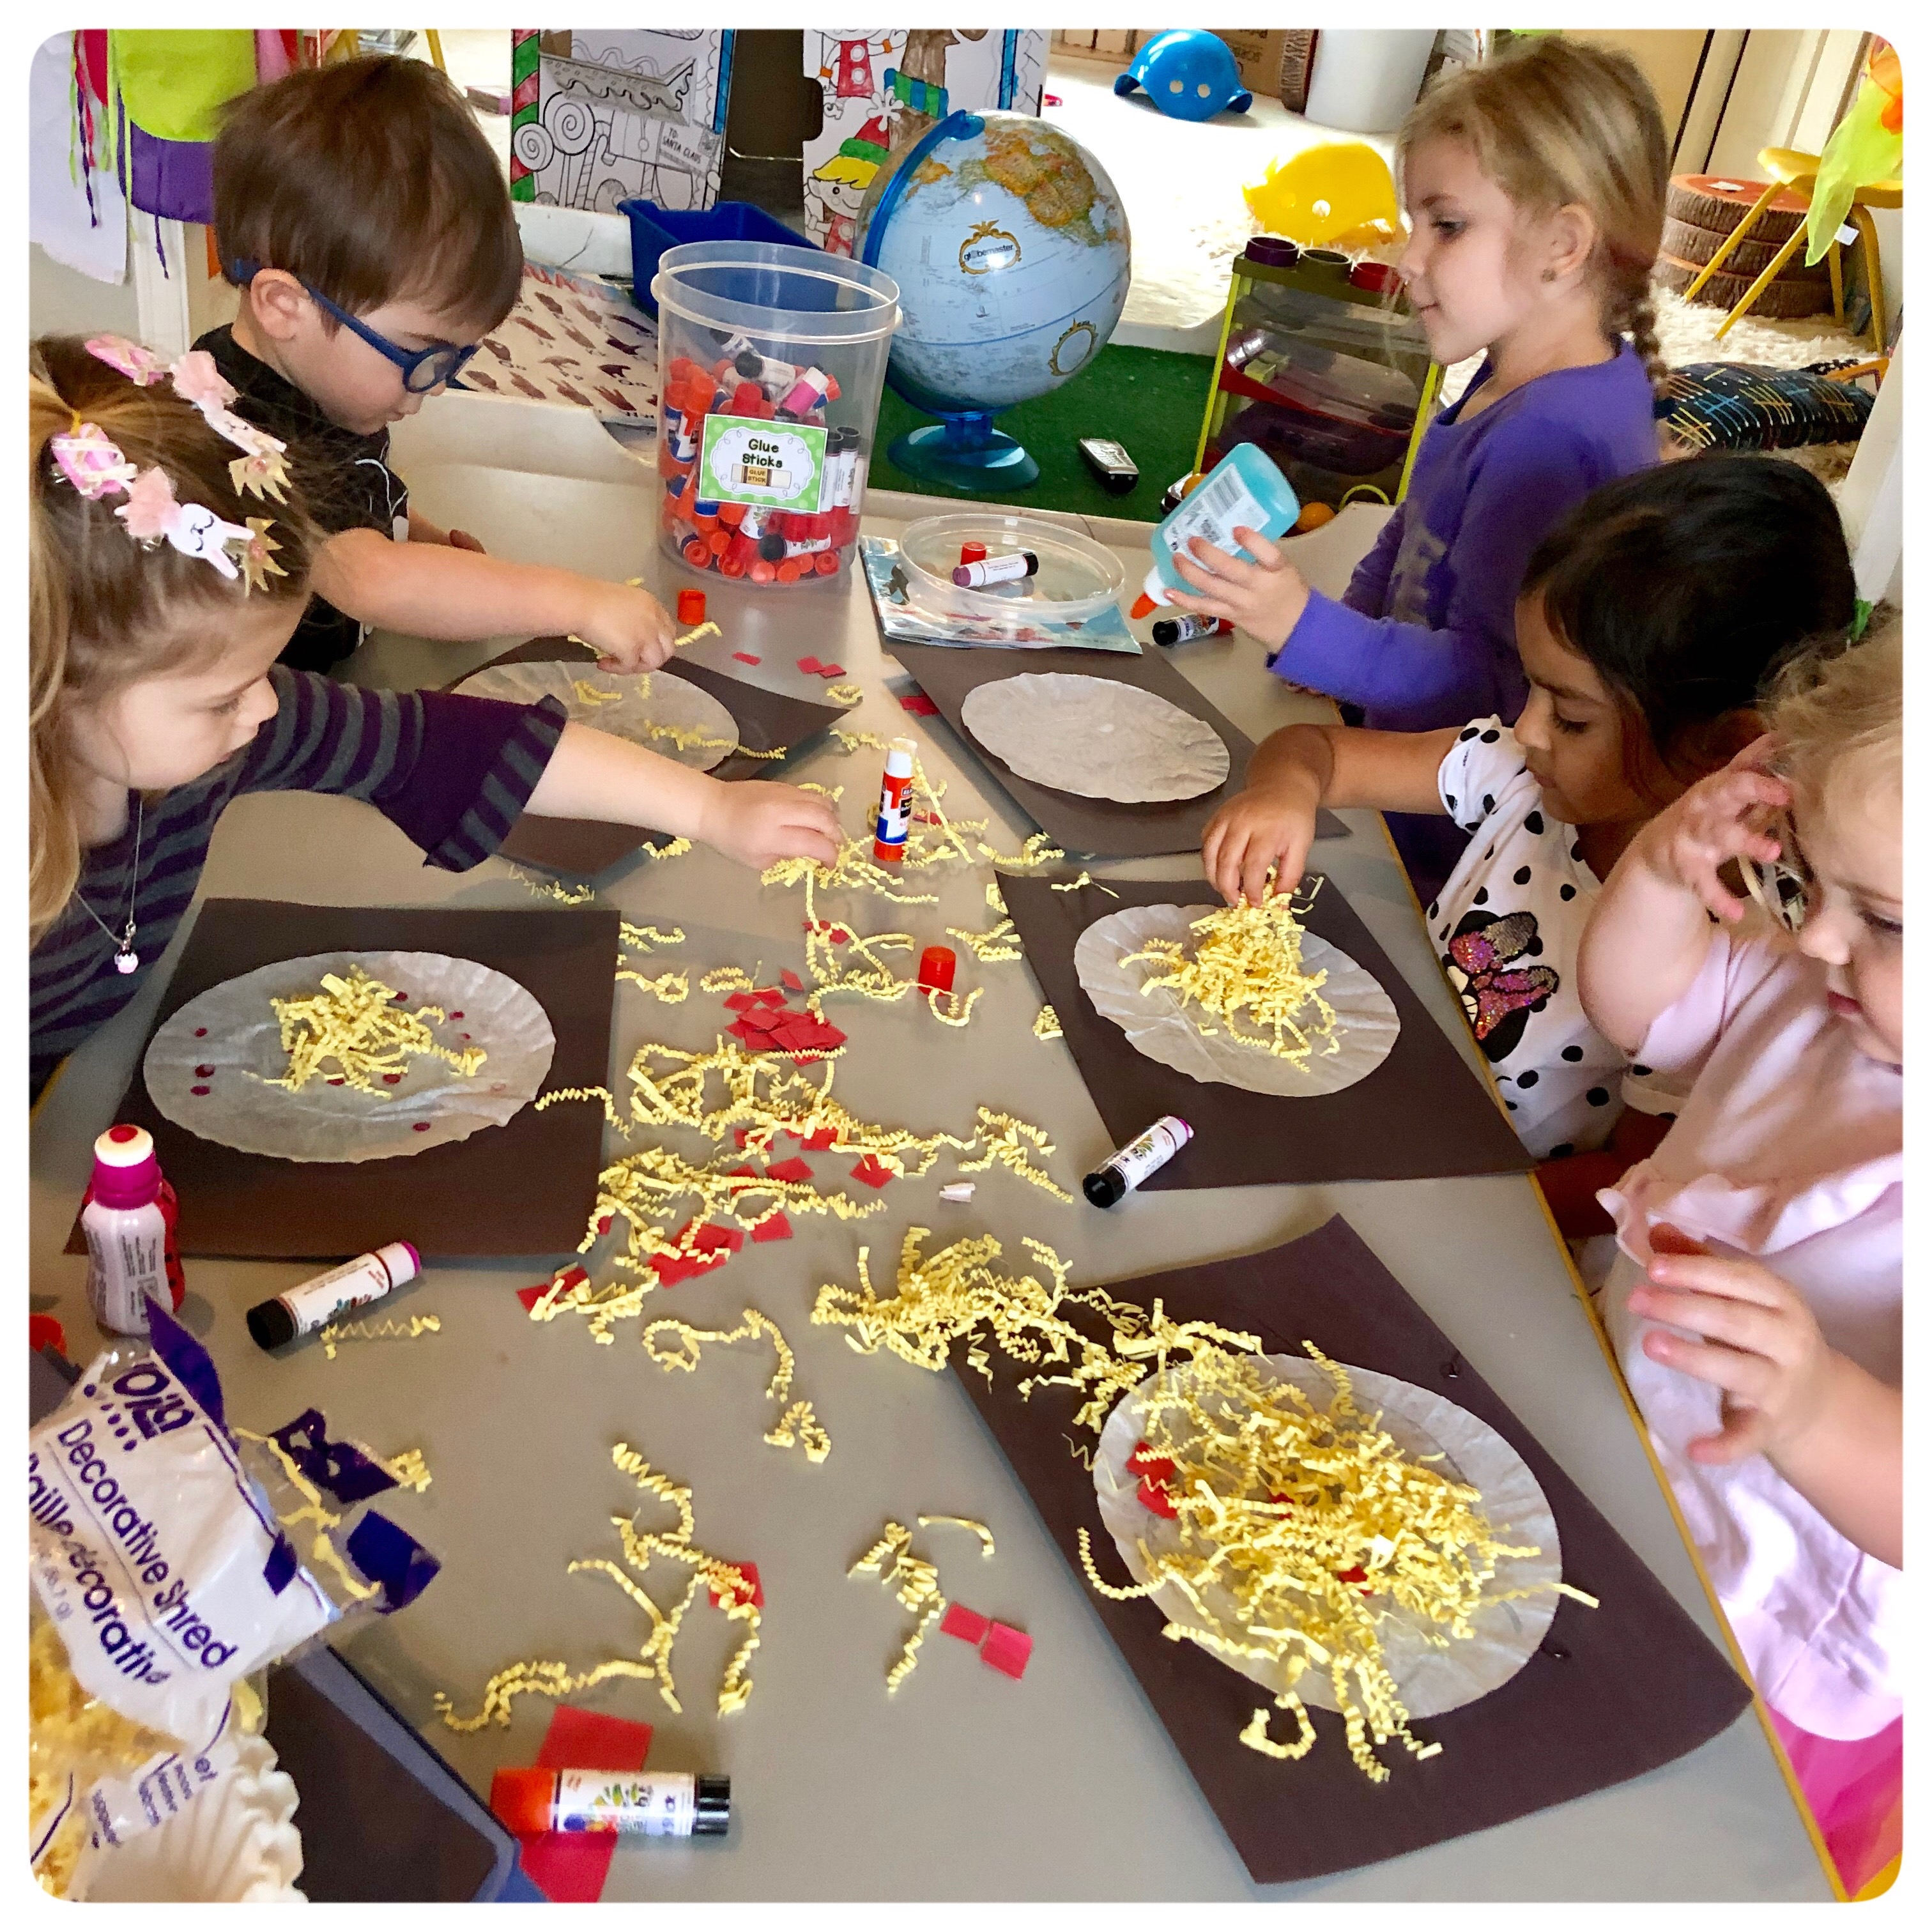 🍕P I Z Z A C R A F T 🍕 We're learning about the letter P and I love using sensory materials to help with their learning.